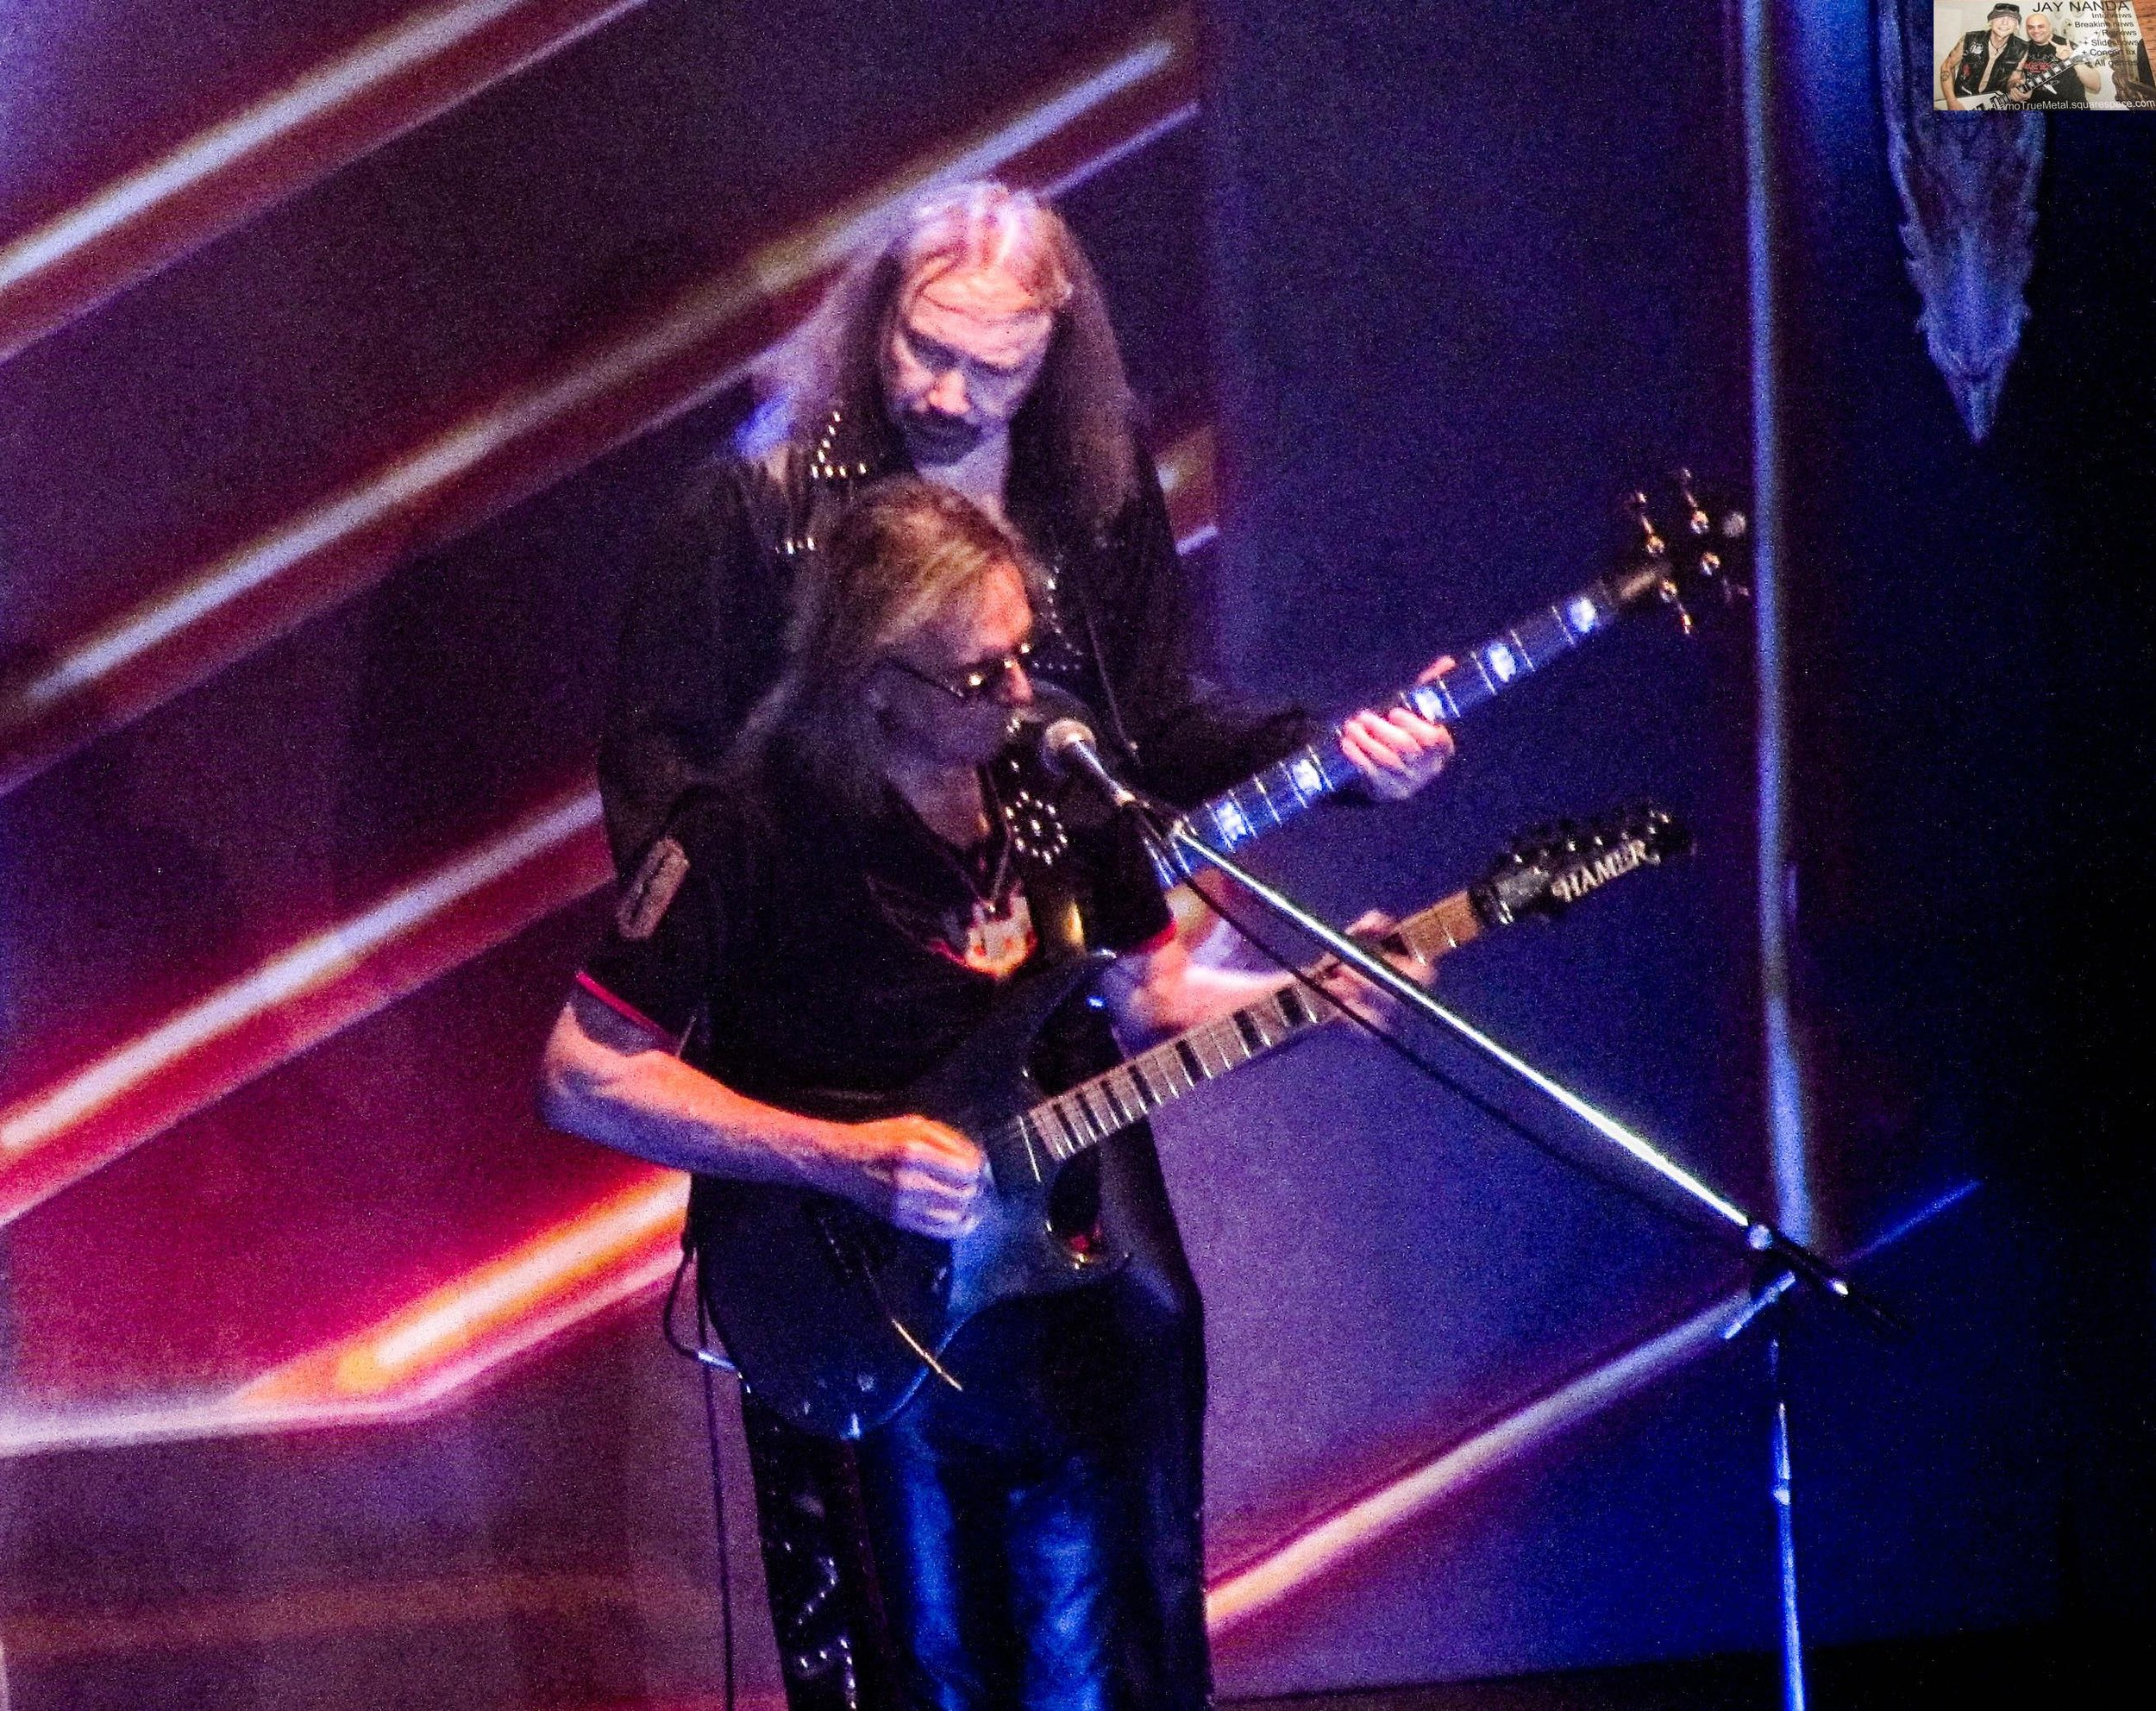 """Parkinson's couldn't keep Tipton sidelined for too long, as the original guitarist accompanies Hill on the second of three  British Steel  encores """"Breaking the Law."""""""